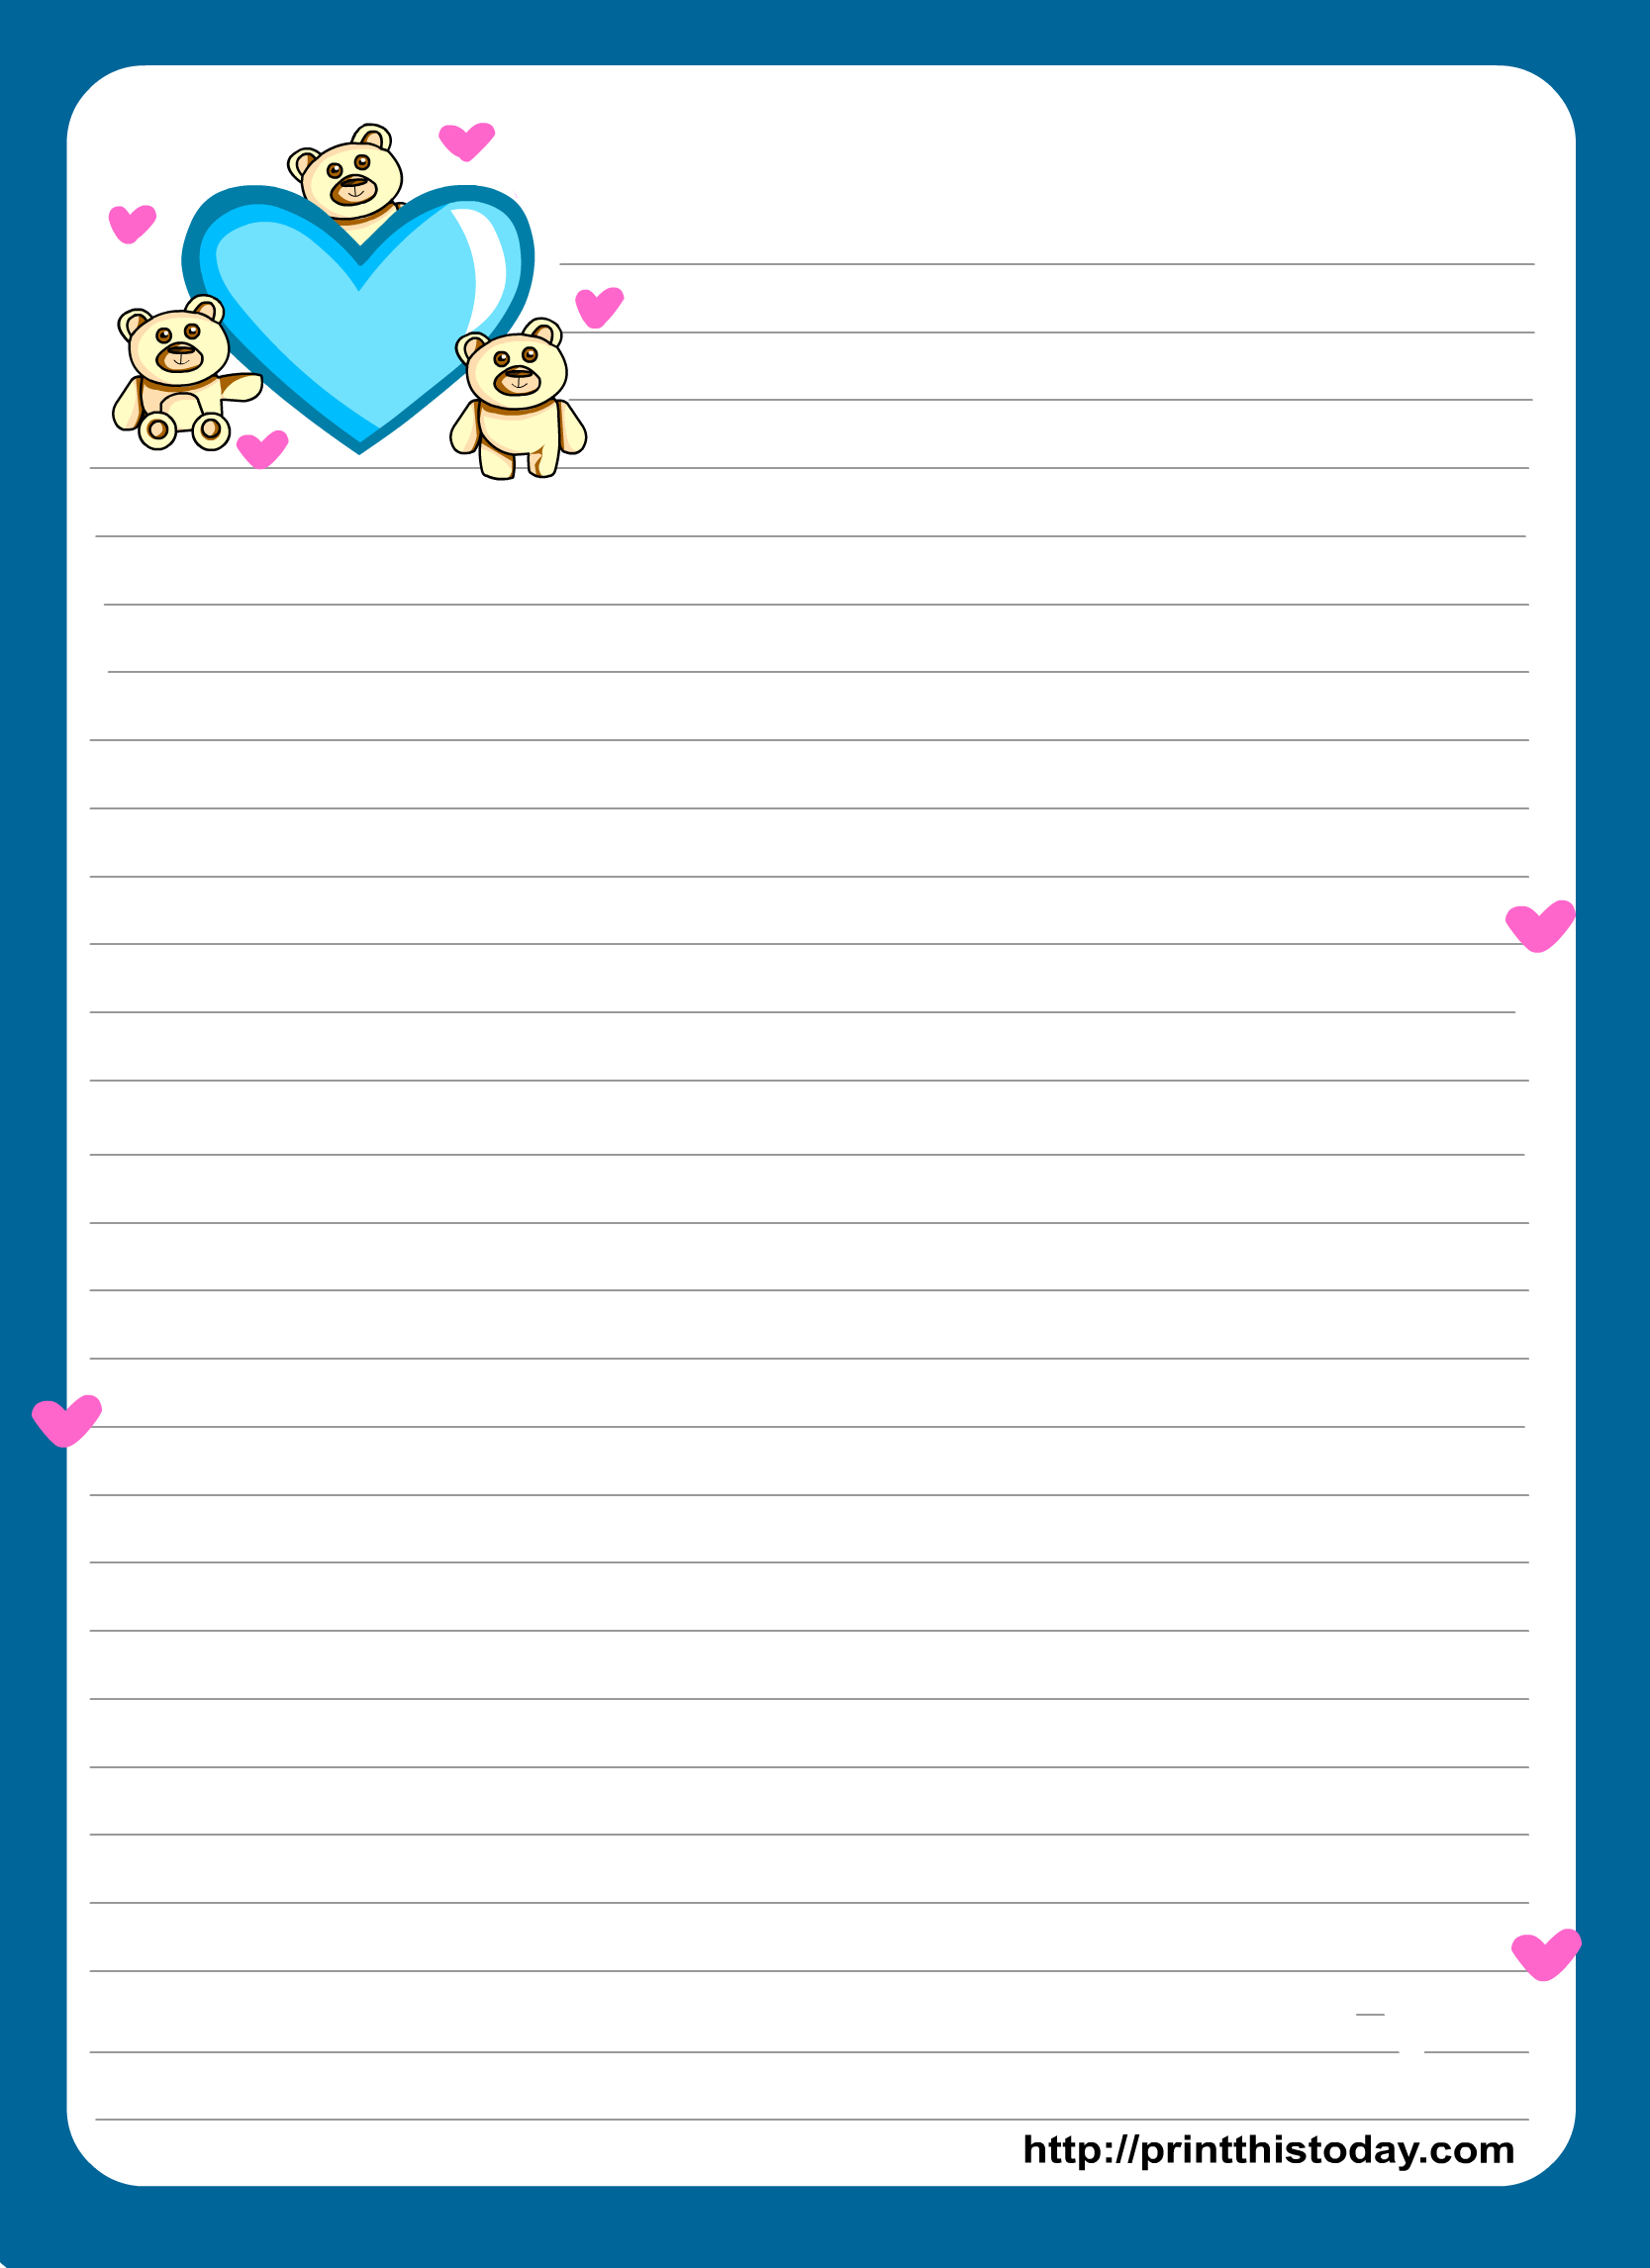 Miss You Love Letter Pad Stationery   Lined Stationery   Free - Free Printable Stationary Pdf